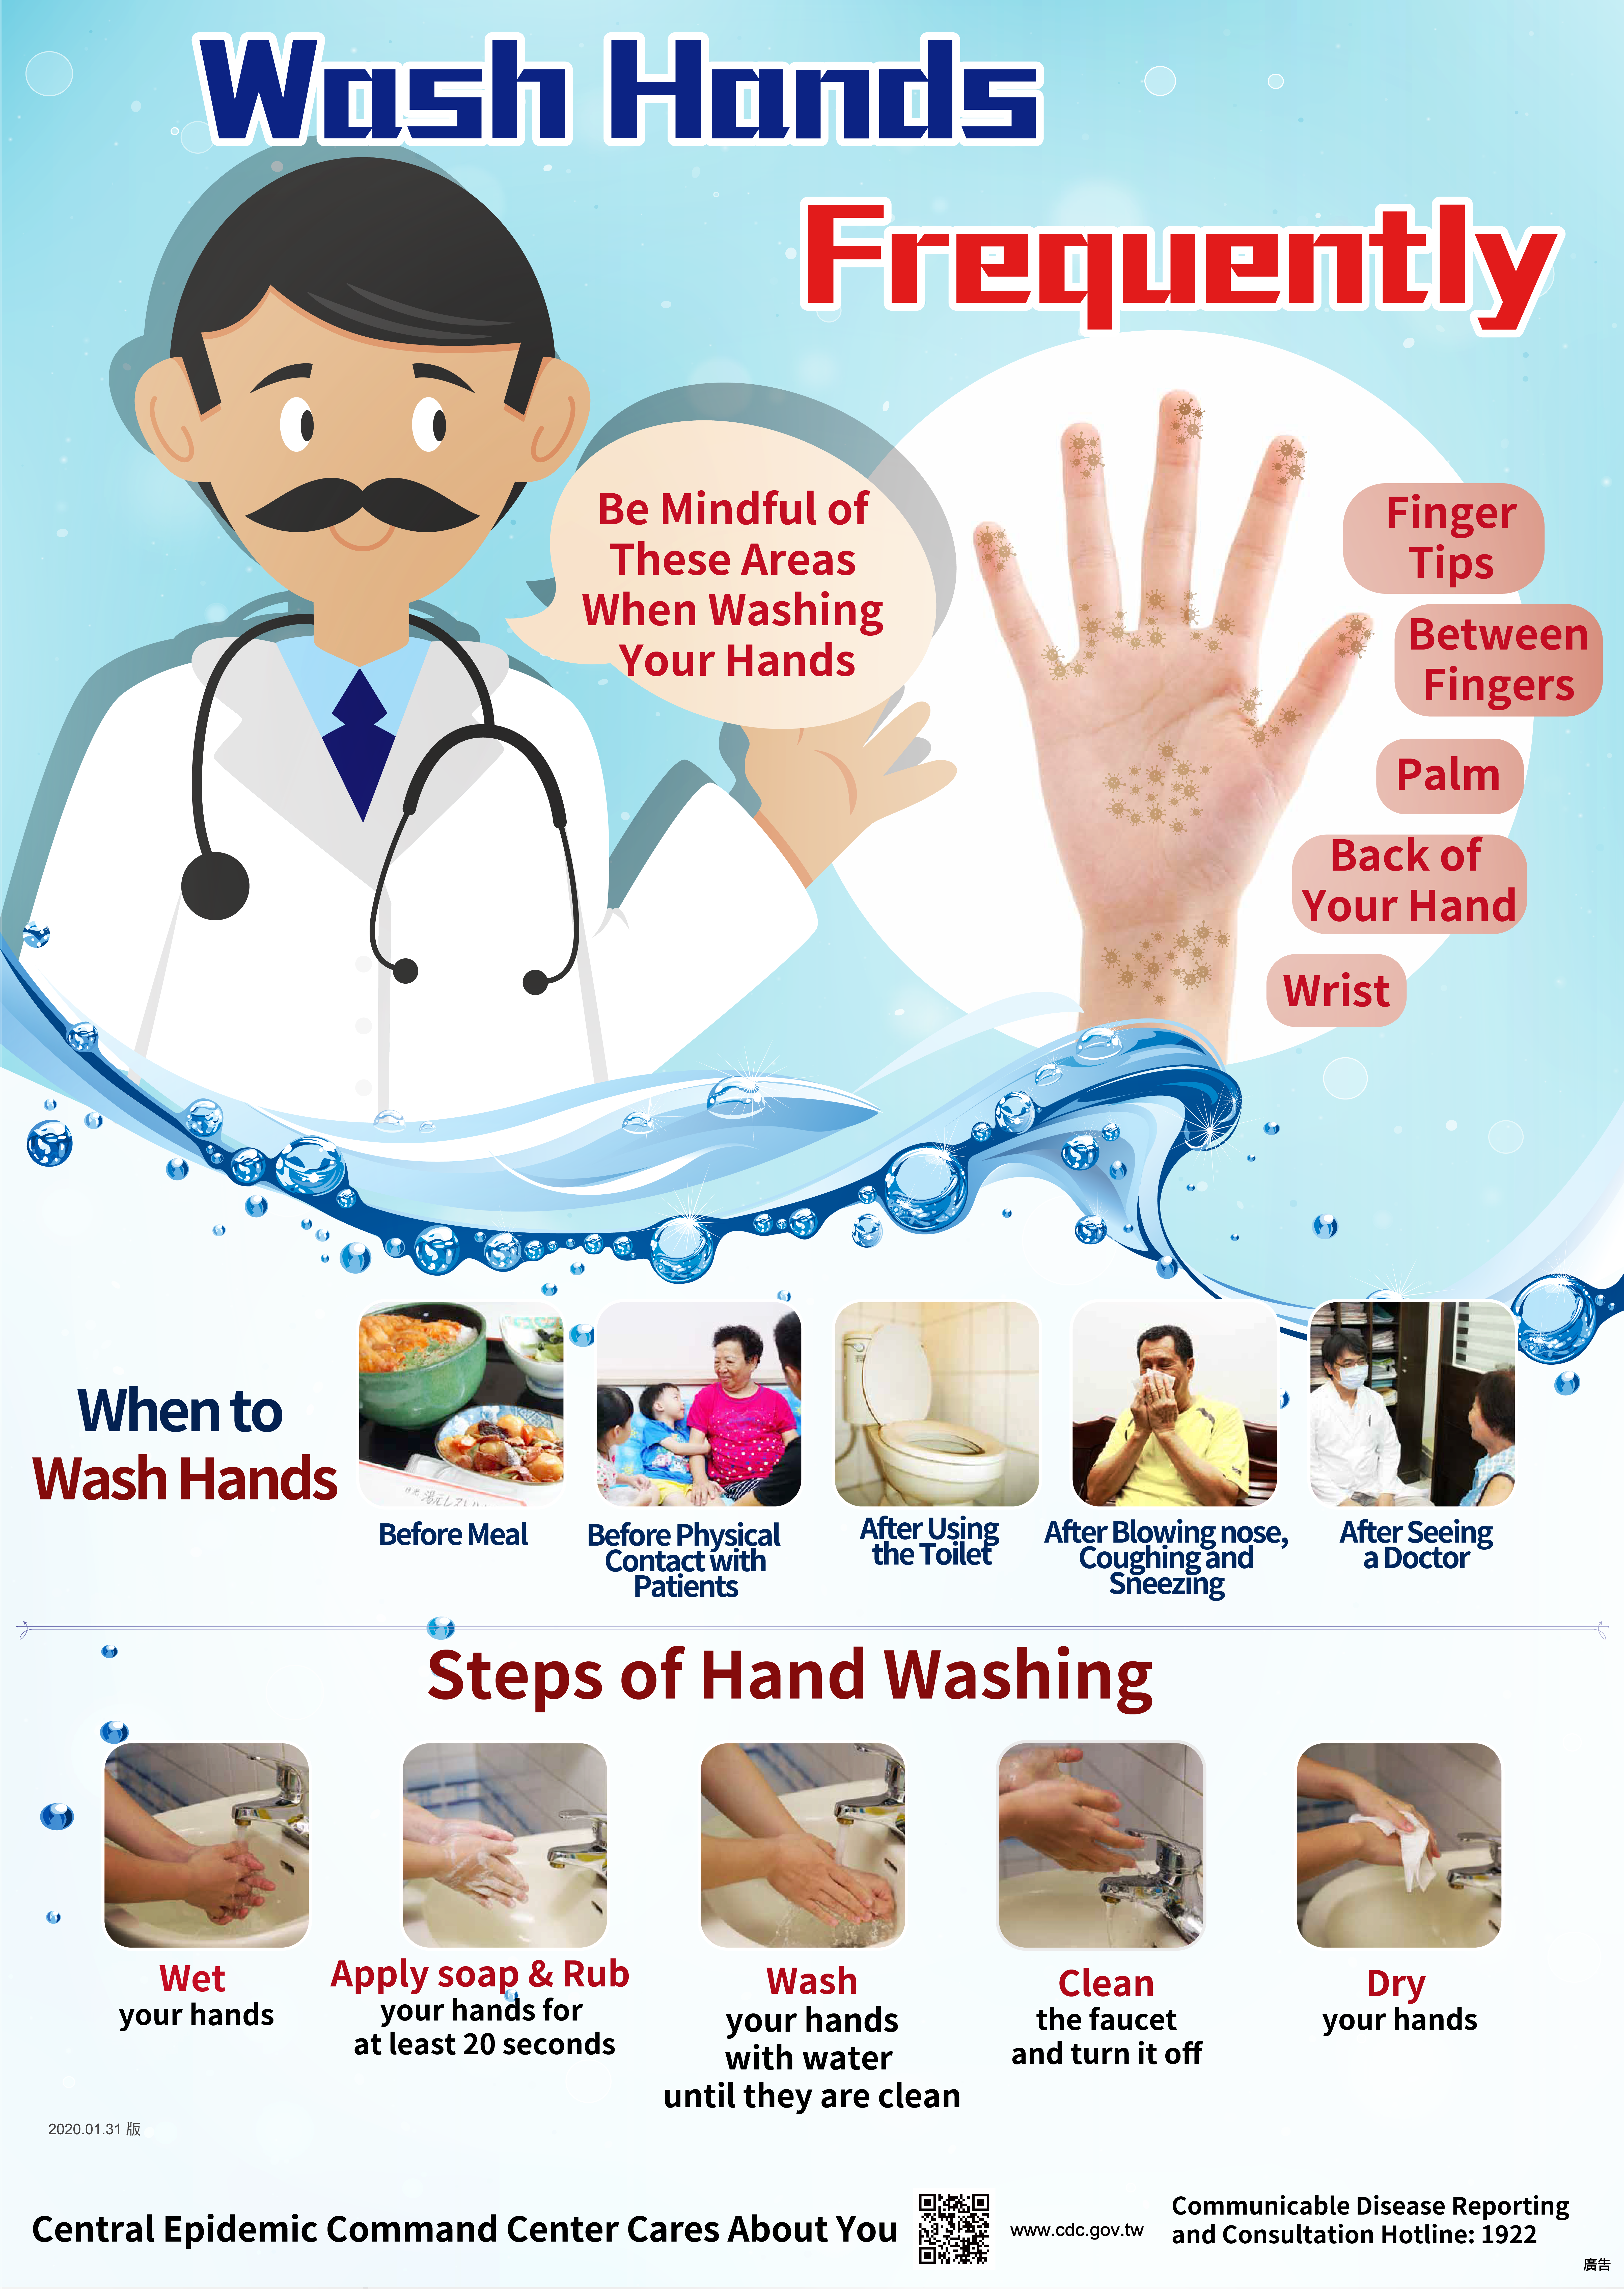 Wash Your Hand Frequently